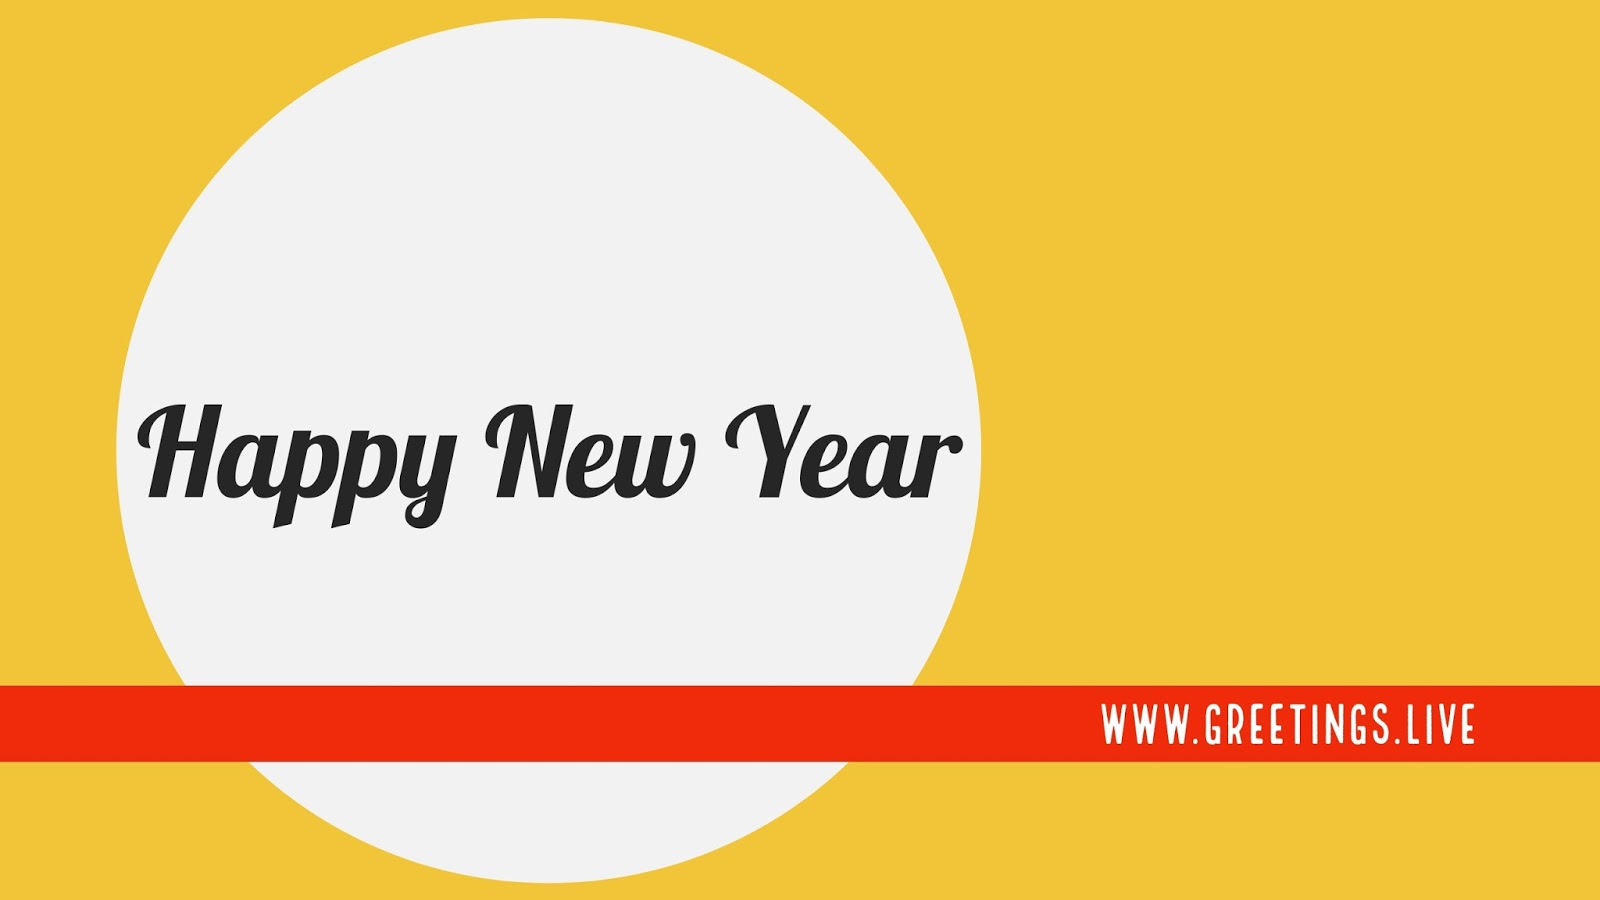 2018 new year wishes greetings 3 best greetings in yellow colour 3 best greetings in yellow colour for happy new year celebration kristyandbryce Gallery